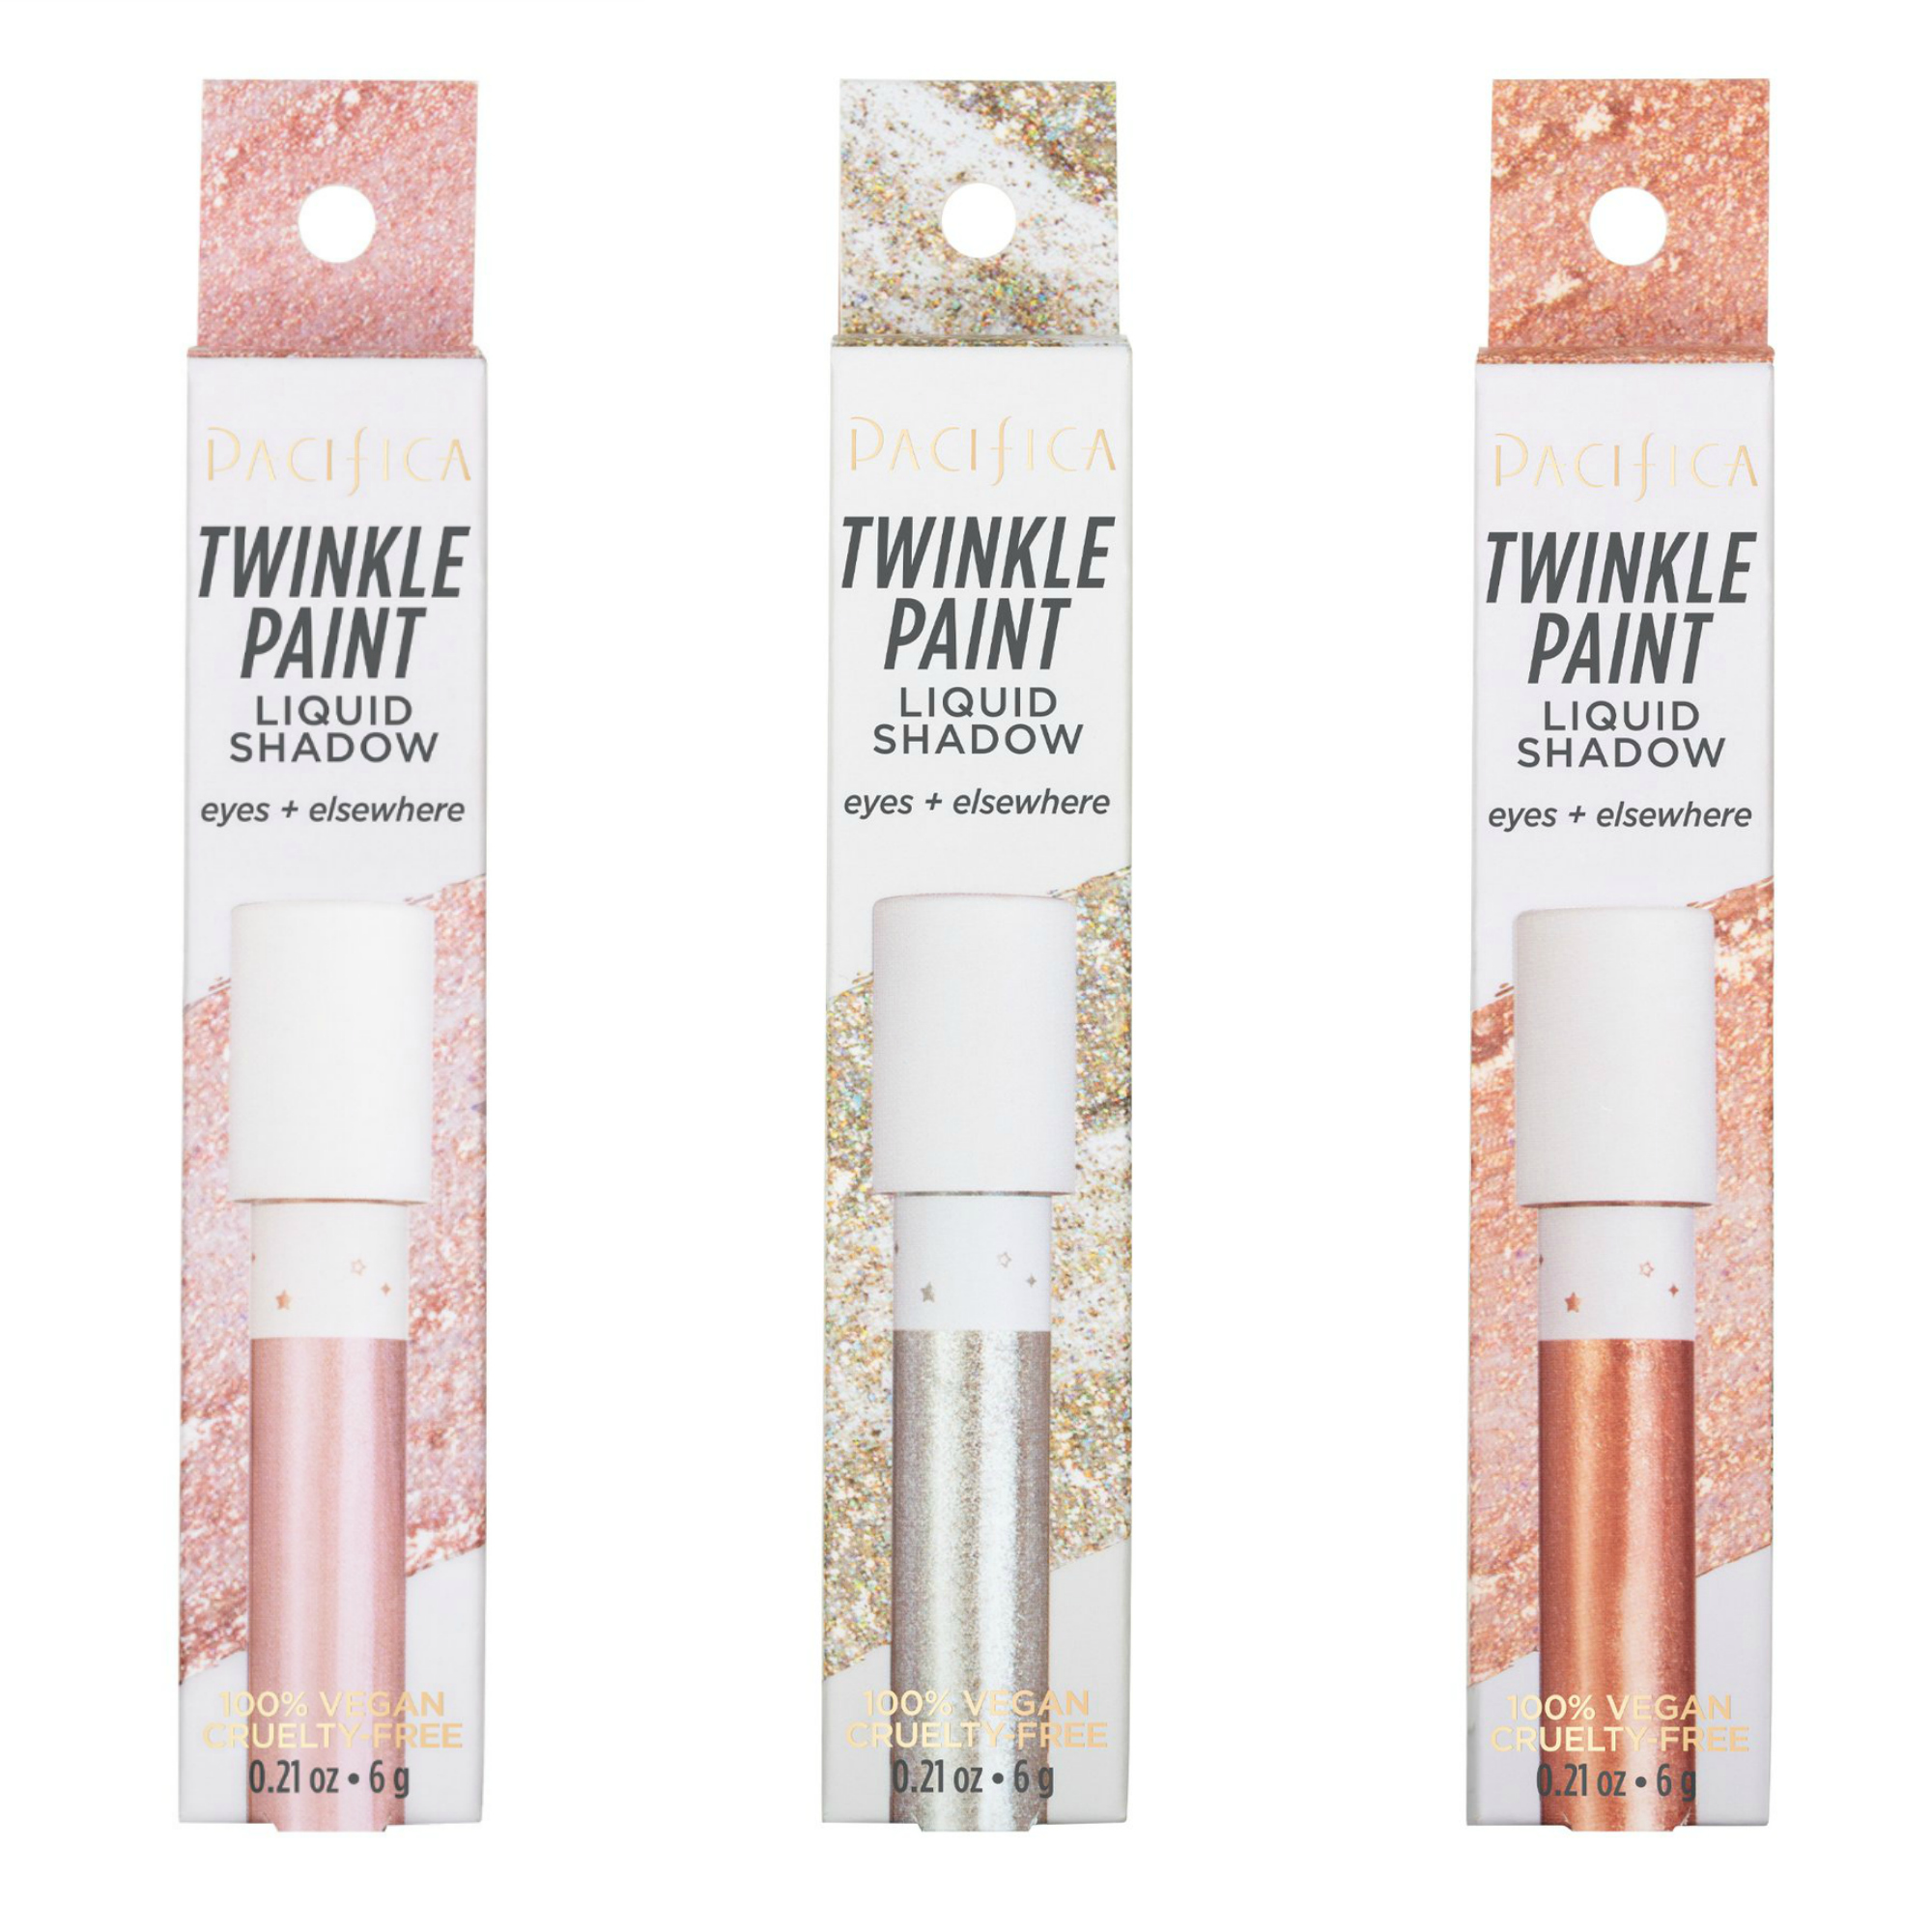 Pacifica Twinkle Paint Liquid Shadow